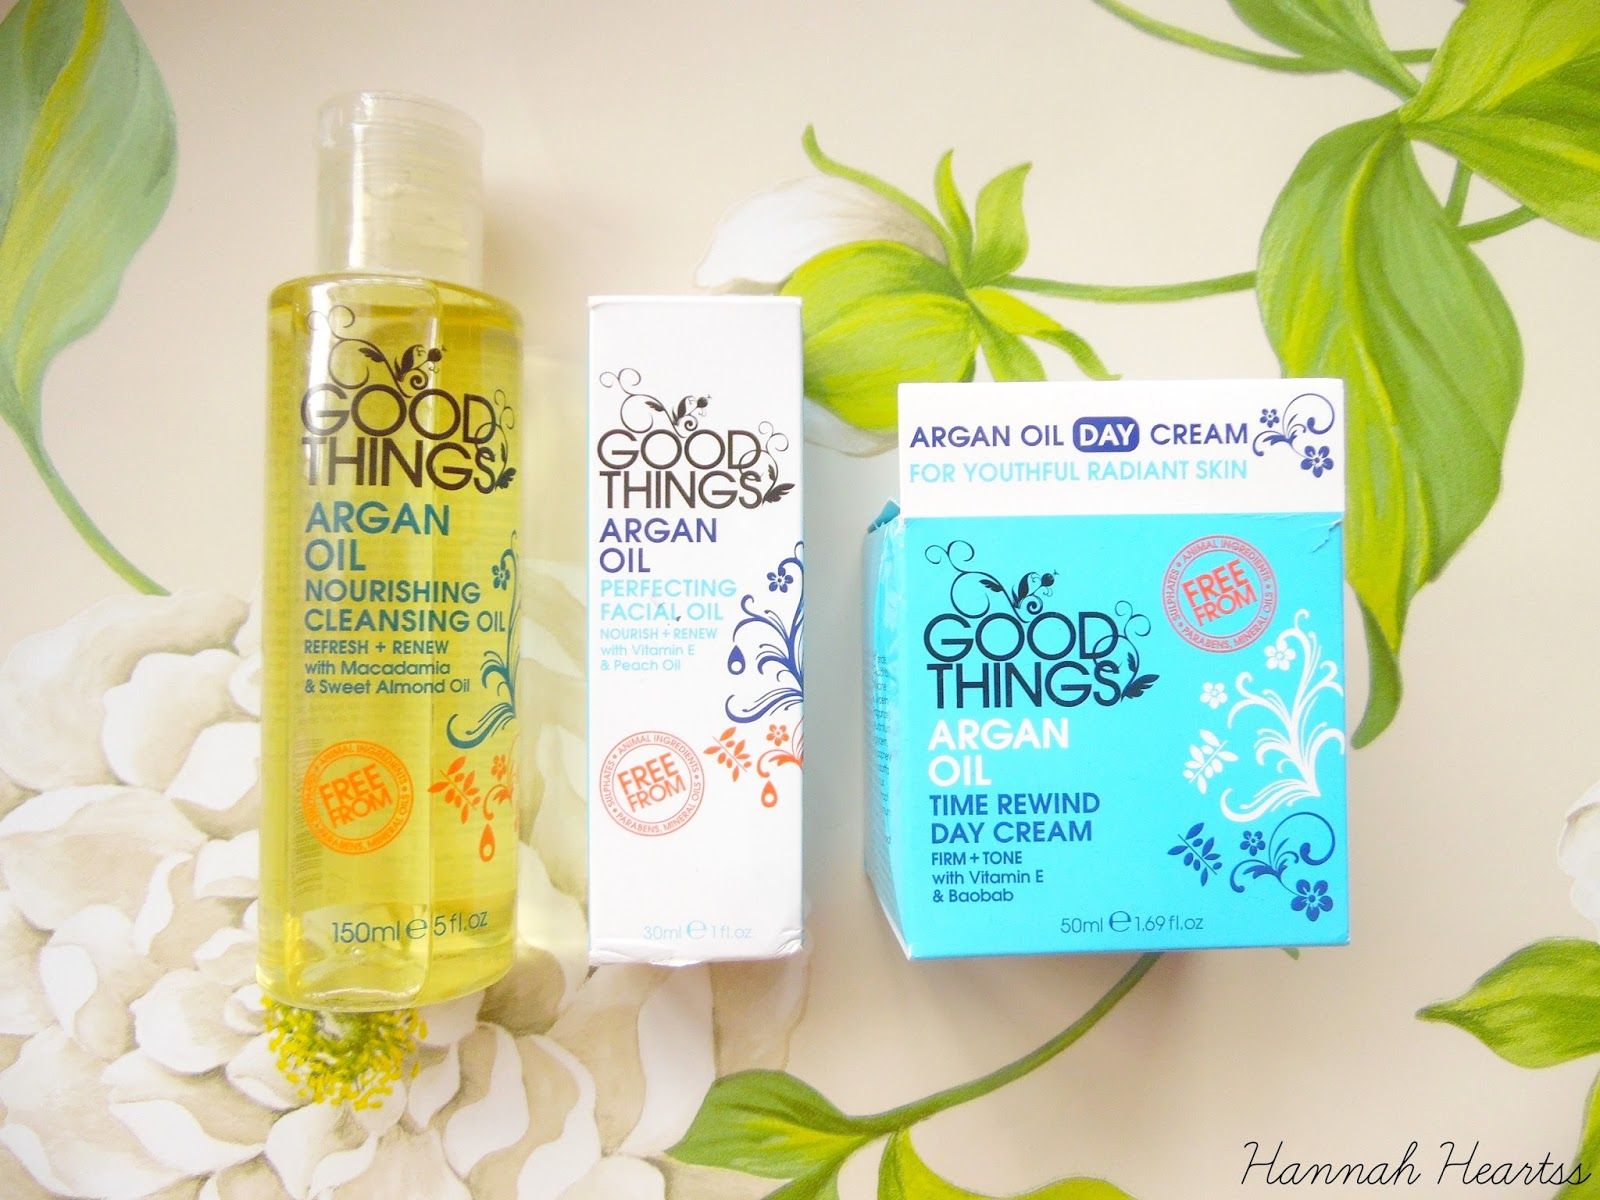 Good Things Argan Oil Skincare